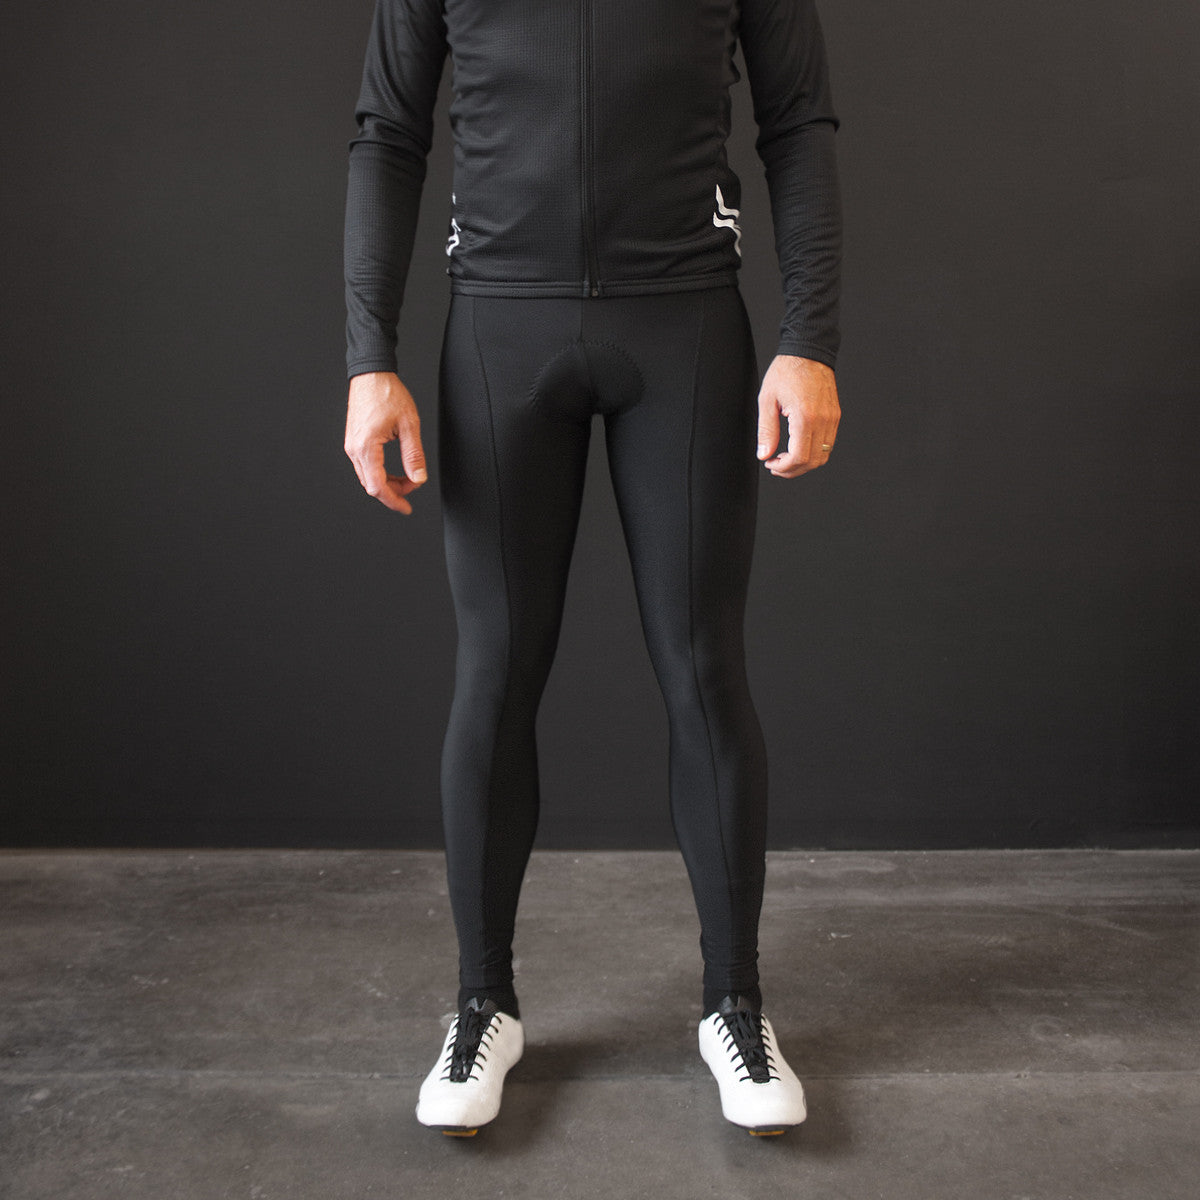 Black Thermal Bib Tights